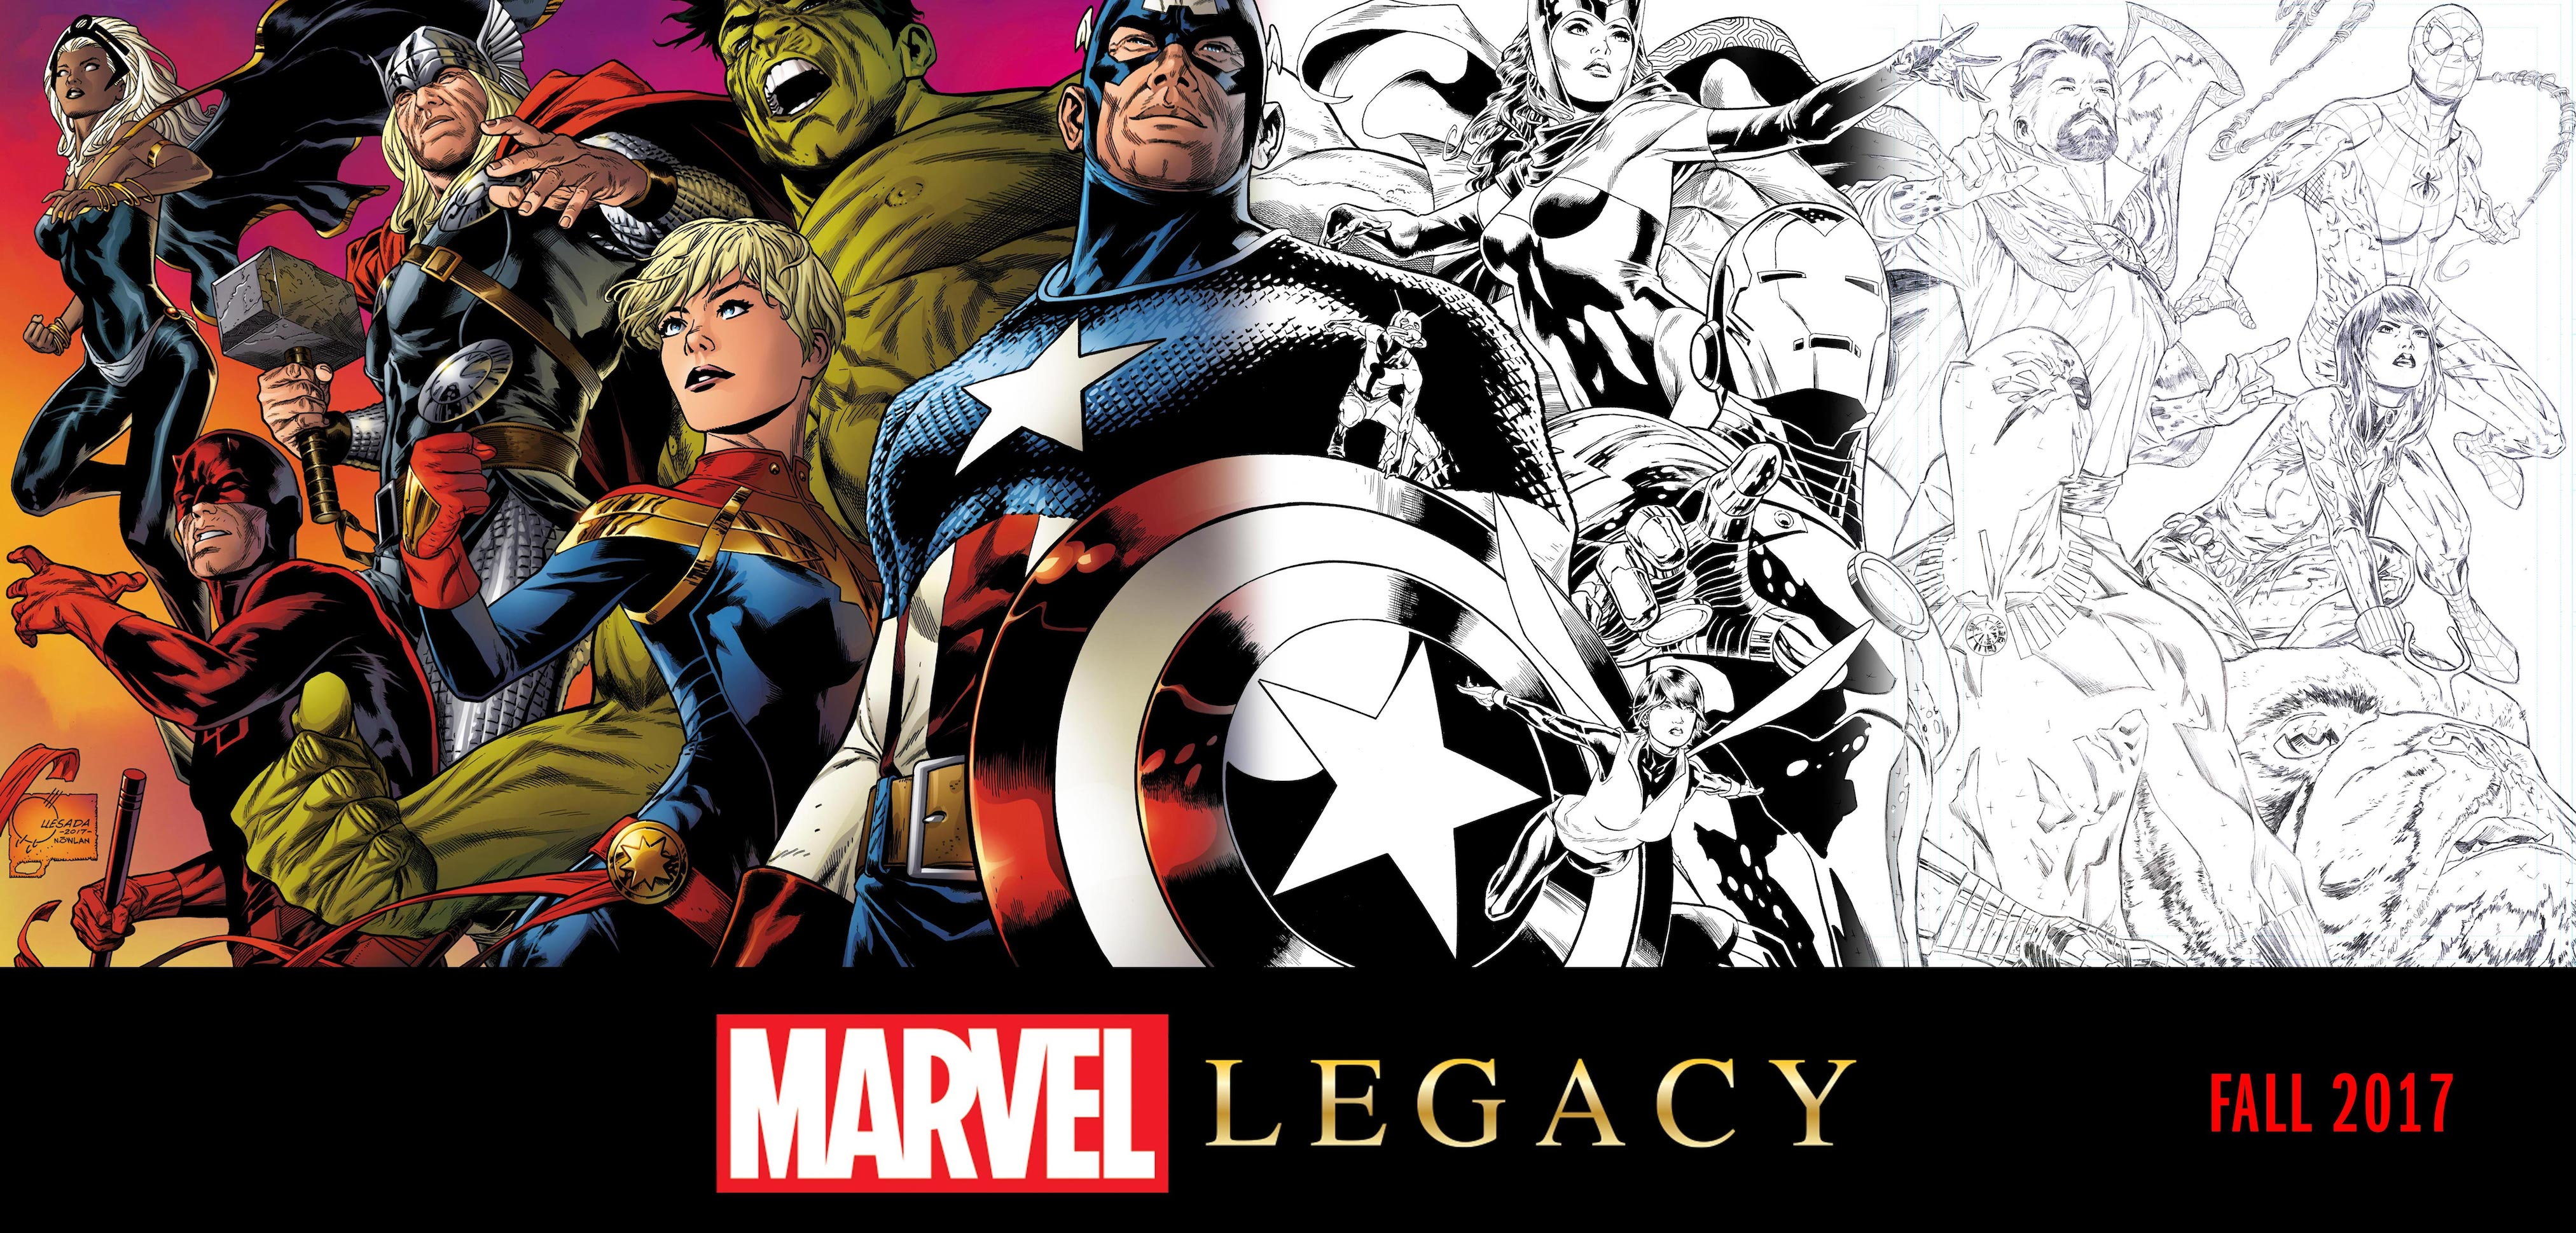 Marvel's Next Big Thing: Marvel Legacy Starts Fall 2017!